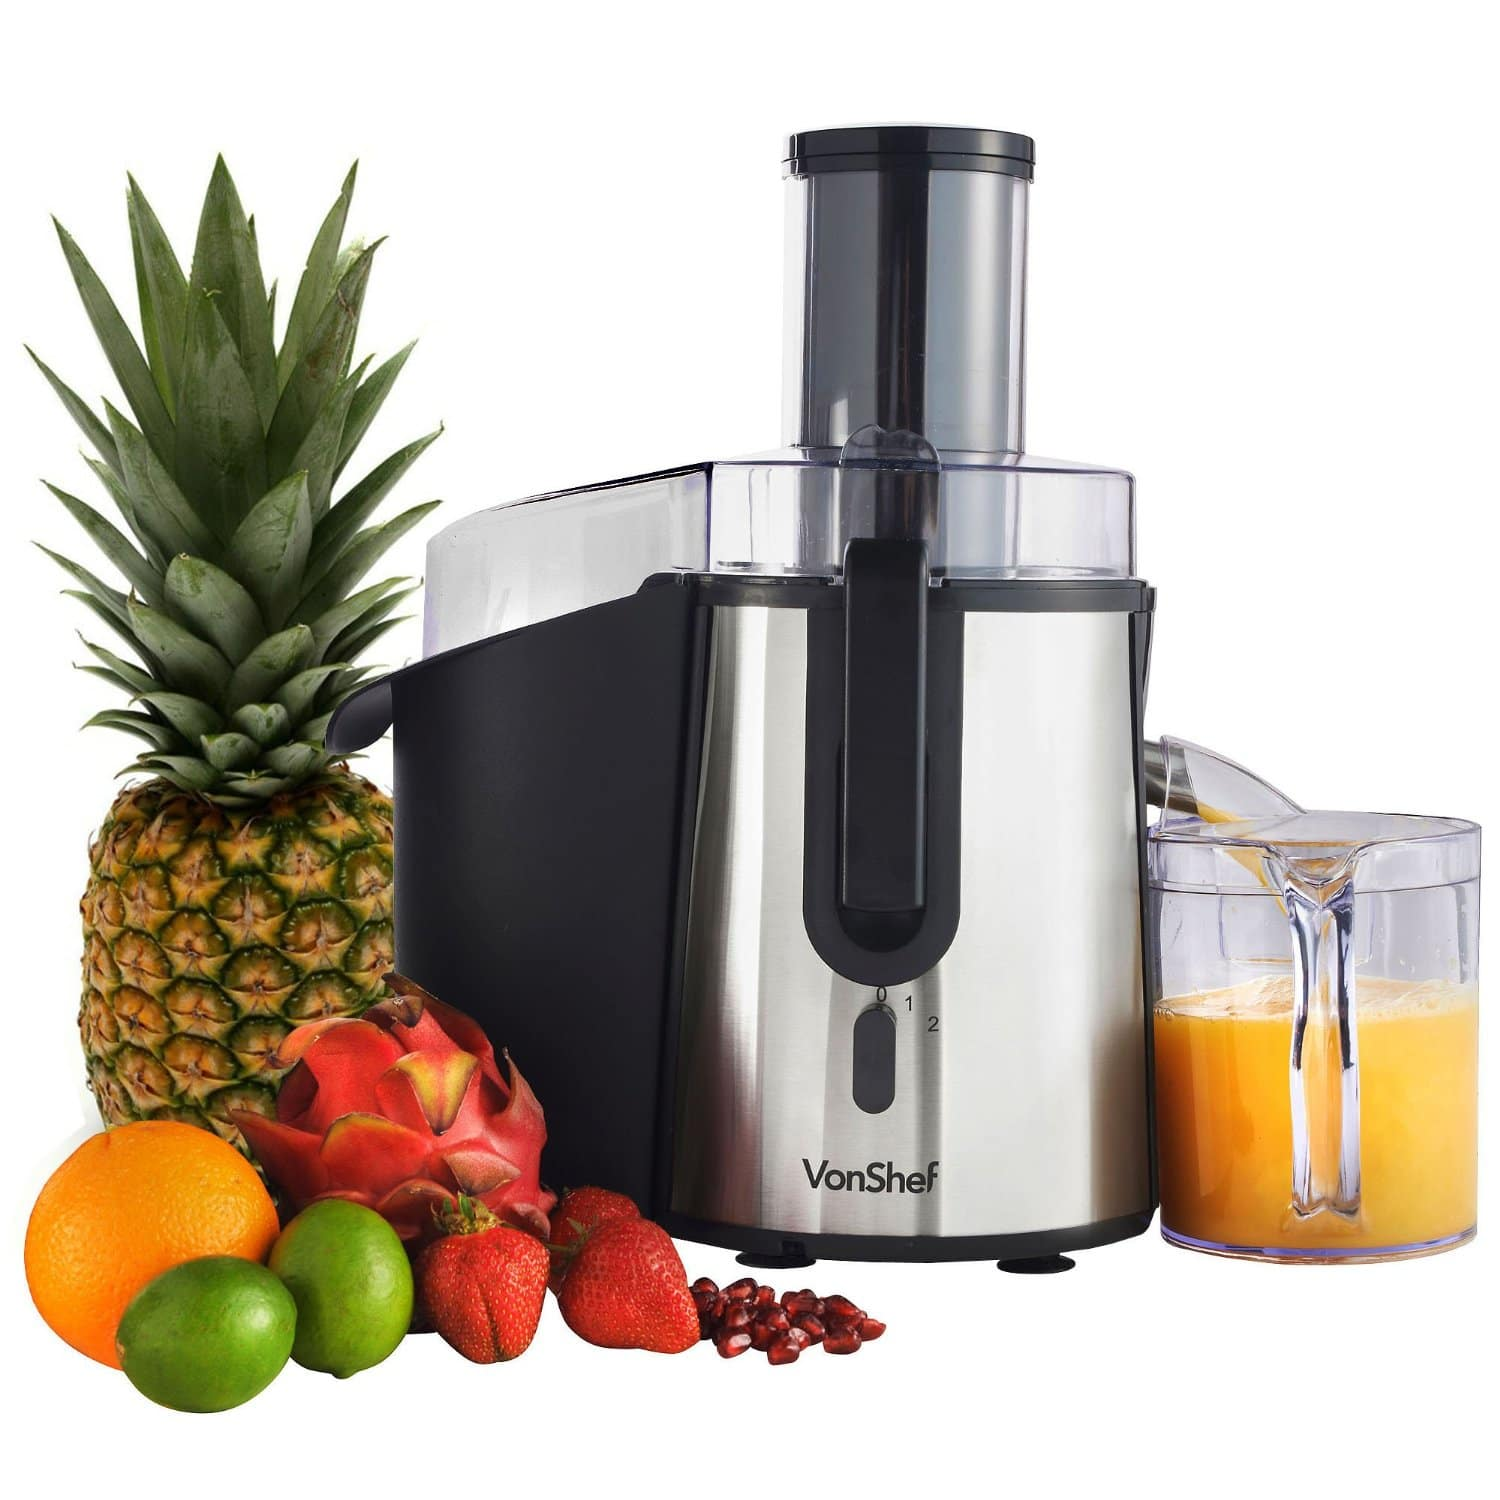 VonShef Professional Whole Fruit Juicer